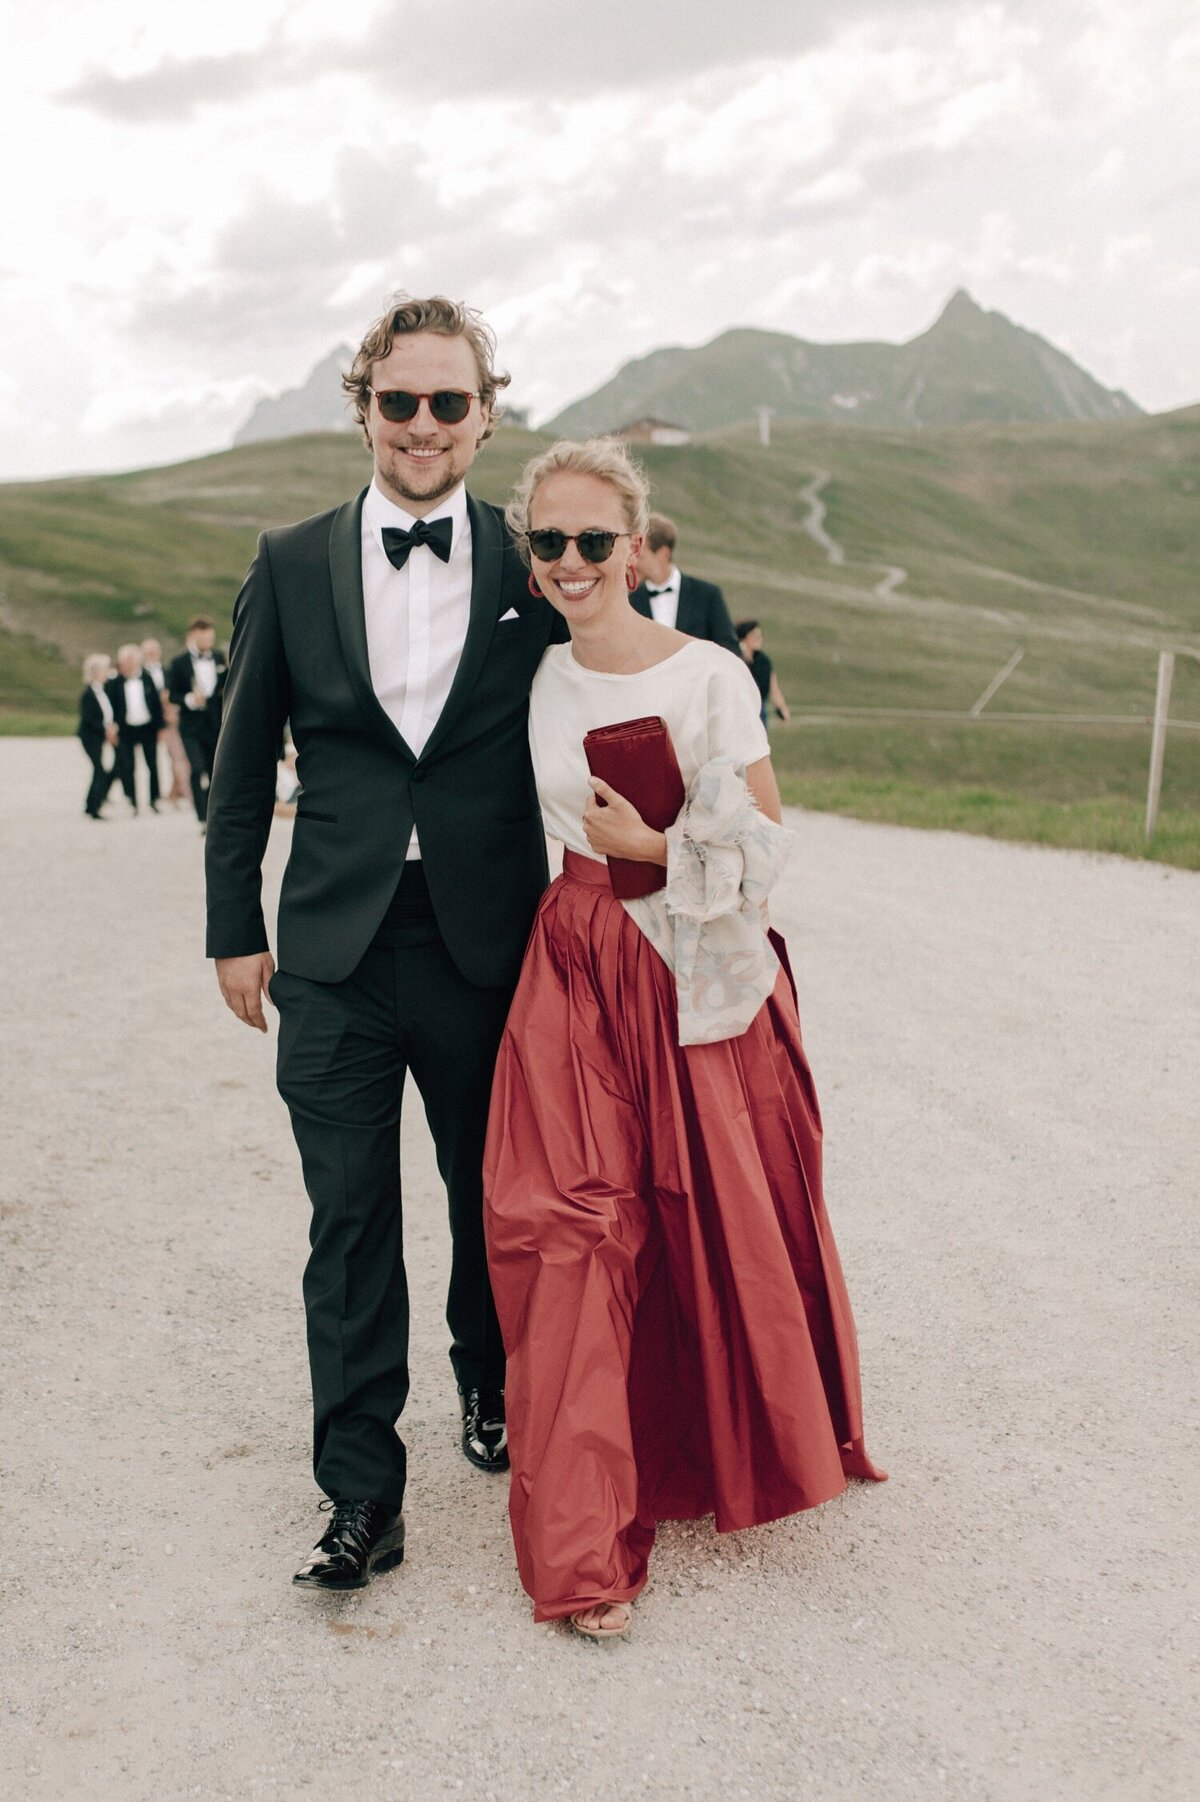 094_Austria_Luxury_Wedding_Photographer (94 von 216)_Flora and Grace is a luxury wedding photographer for stylish and elegant weddings.